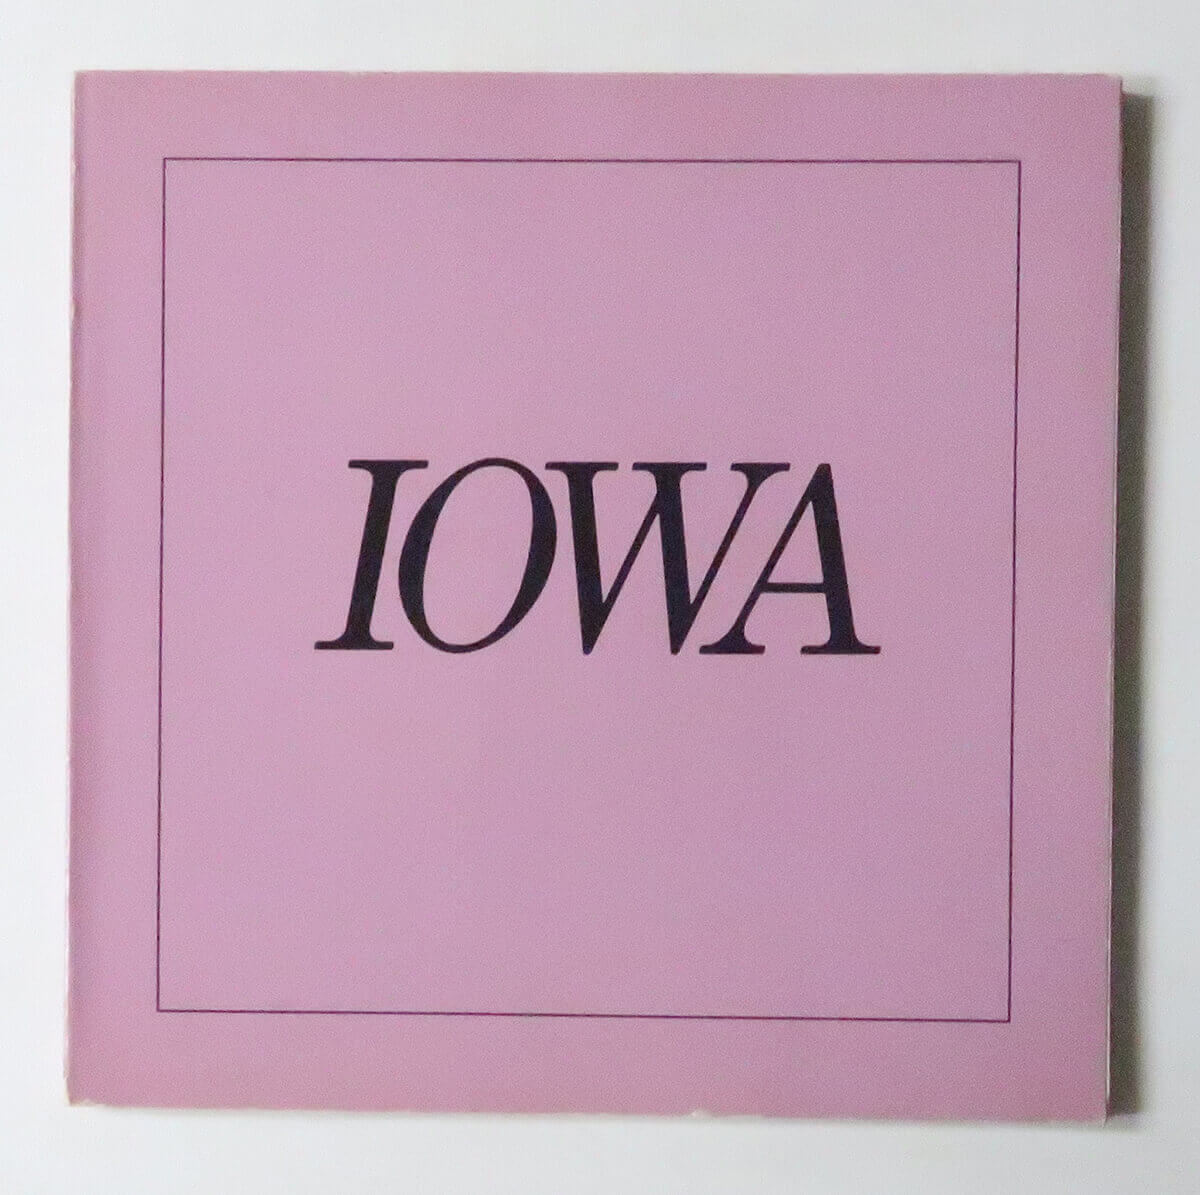 Iowa | Nancy Rexroth